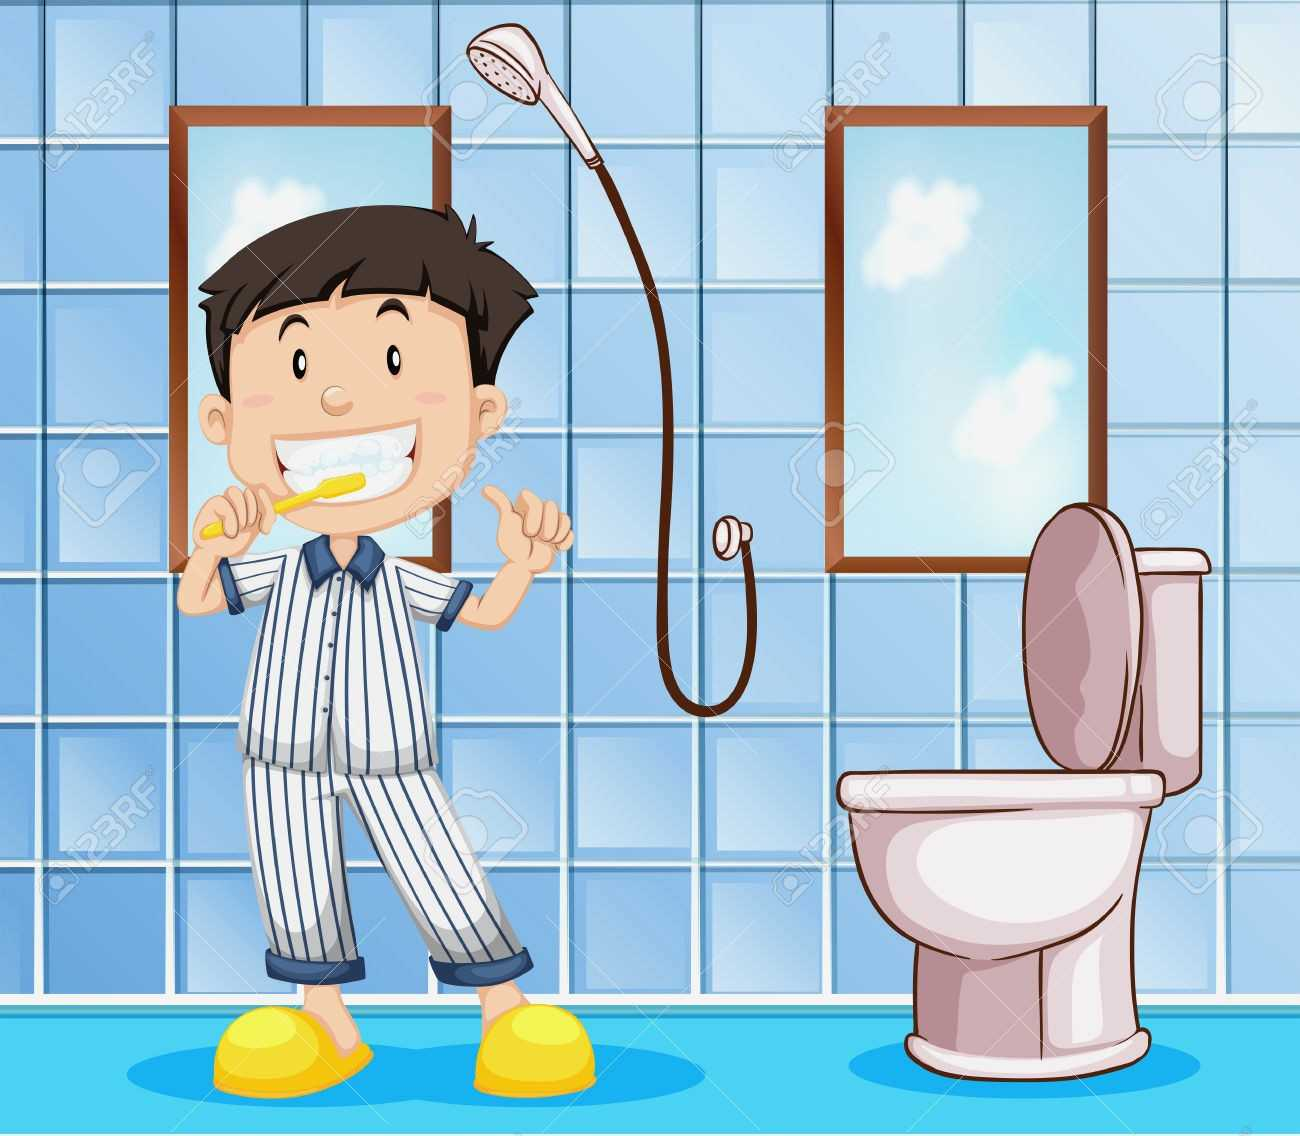 Clipart bathroom. Complete ideas example home